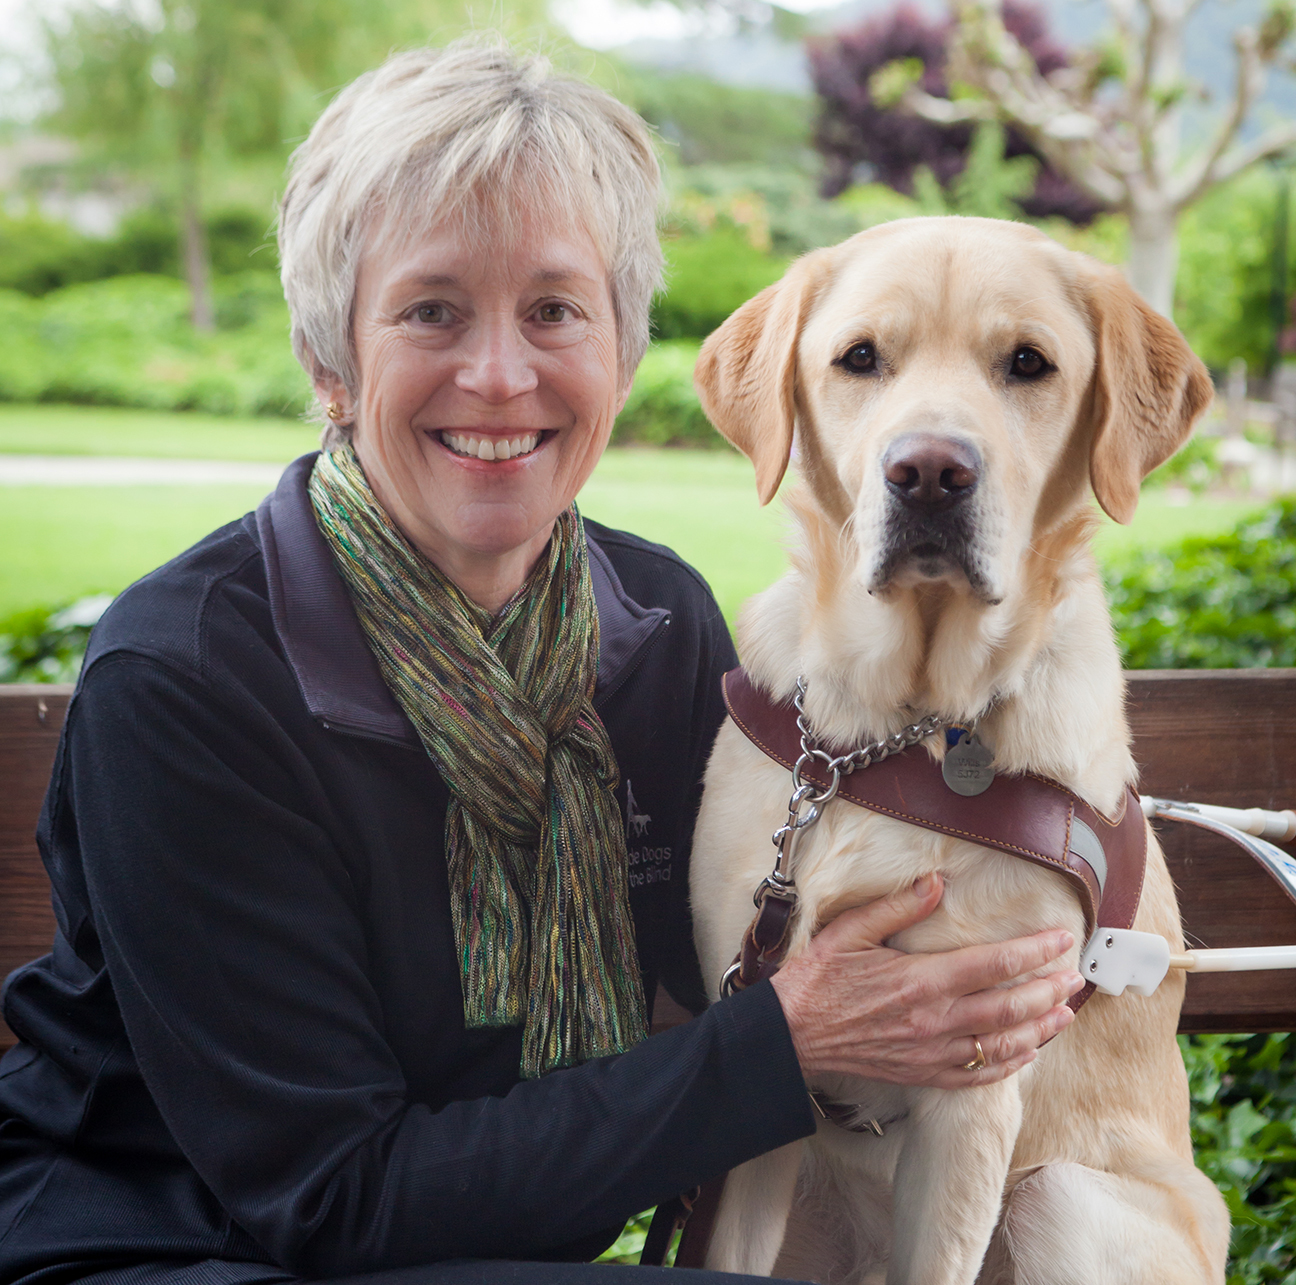 Joan poses on a bench, at our San Rafael campus, with her arm around a Yellow Lab guide dog in harness.